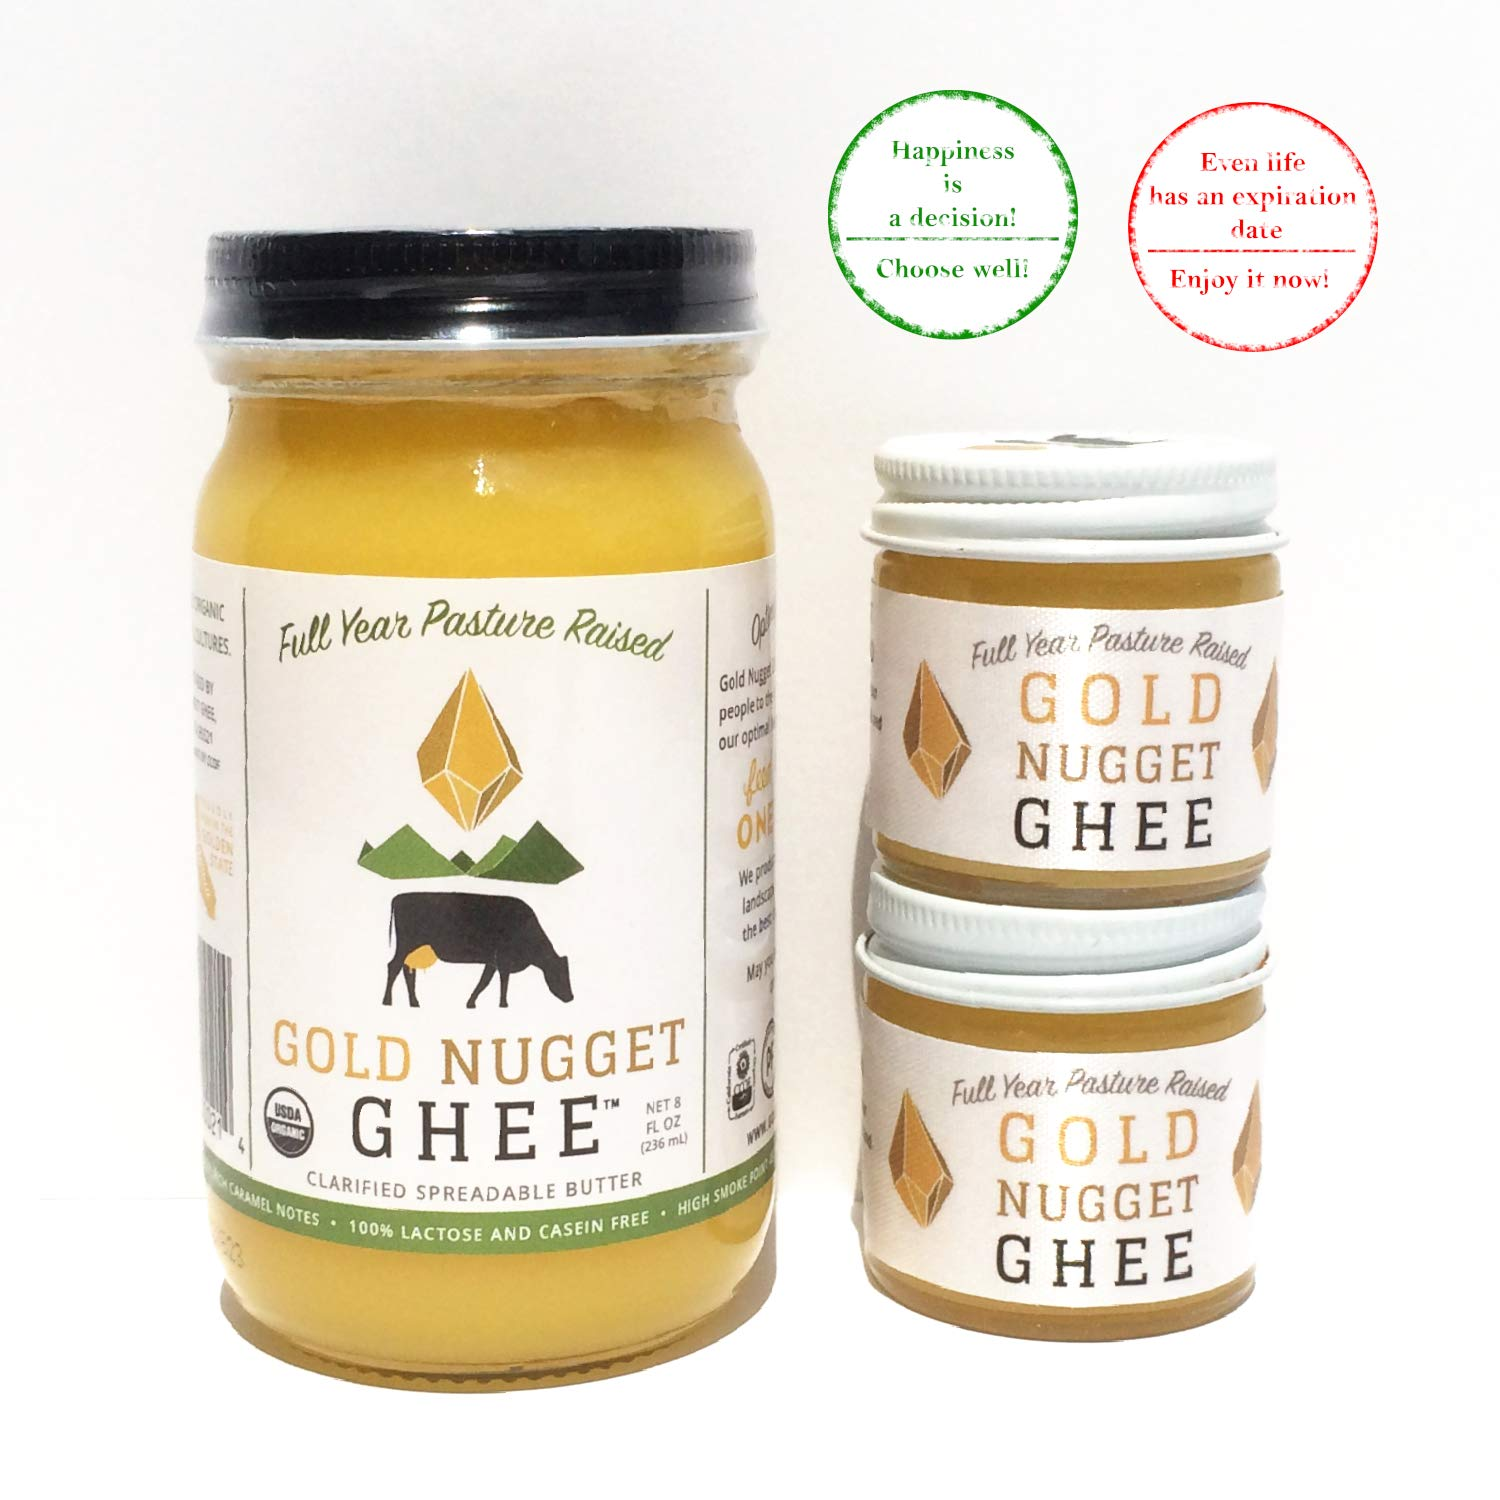 Gee Butter Organic | Gold Nugget Full Year Pasture Raised Organic Ghee | 1 Jar 8oz + 2 Travel Size Jars 1oz | Grassfed Pure Organic Ghee for Coffee & Cooking